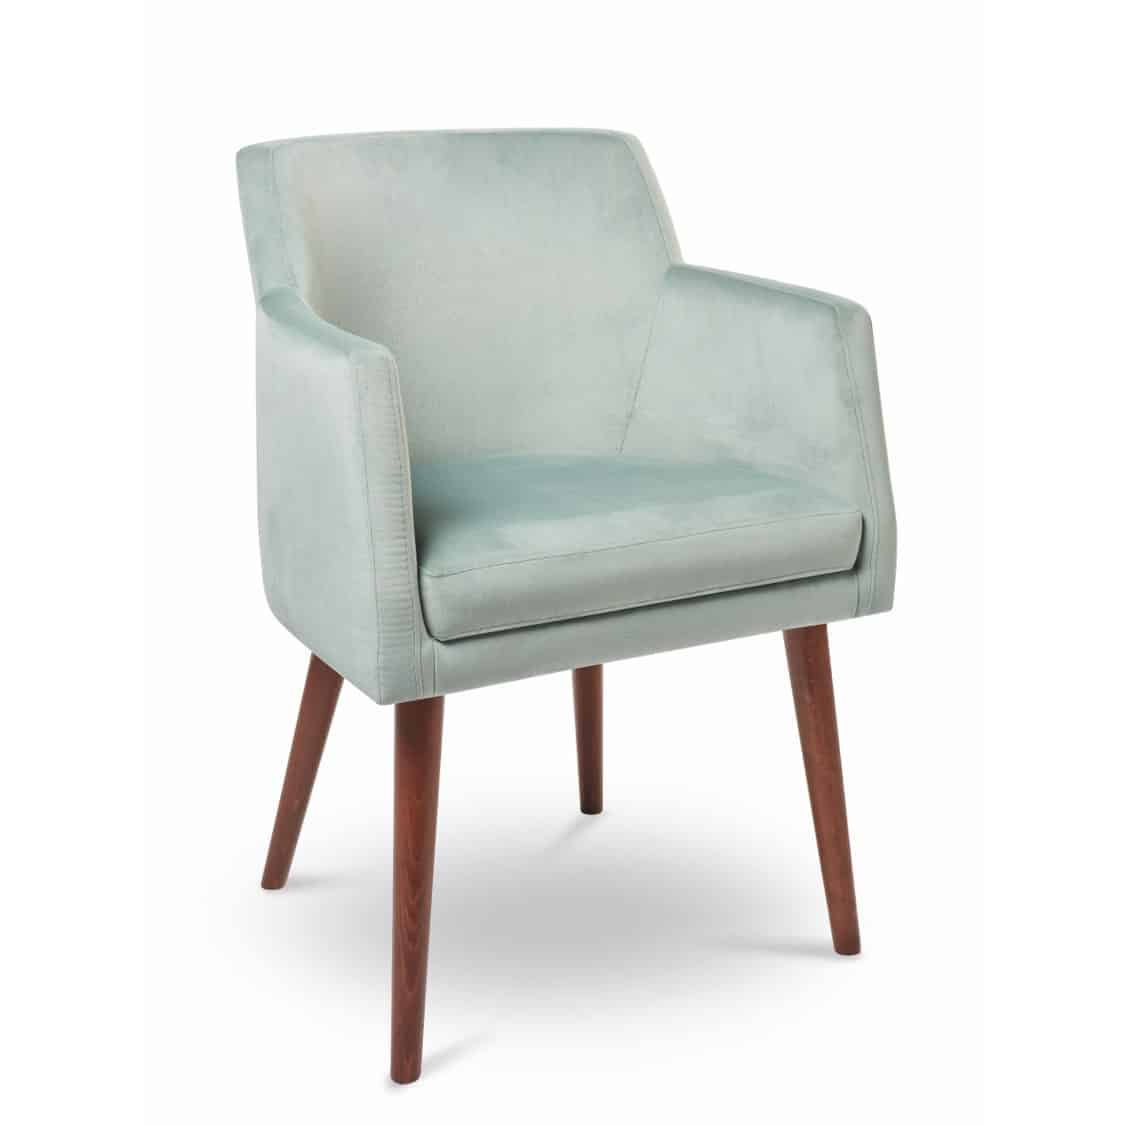 Sophia armchair with round legs at DeFrae Contract Furniture